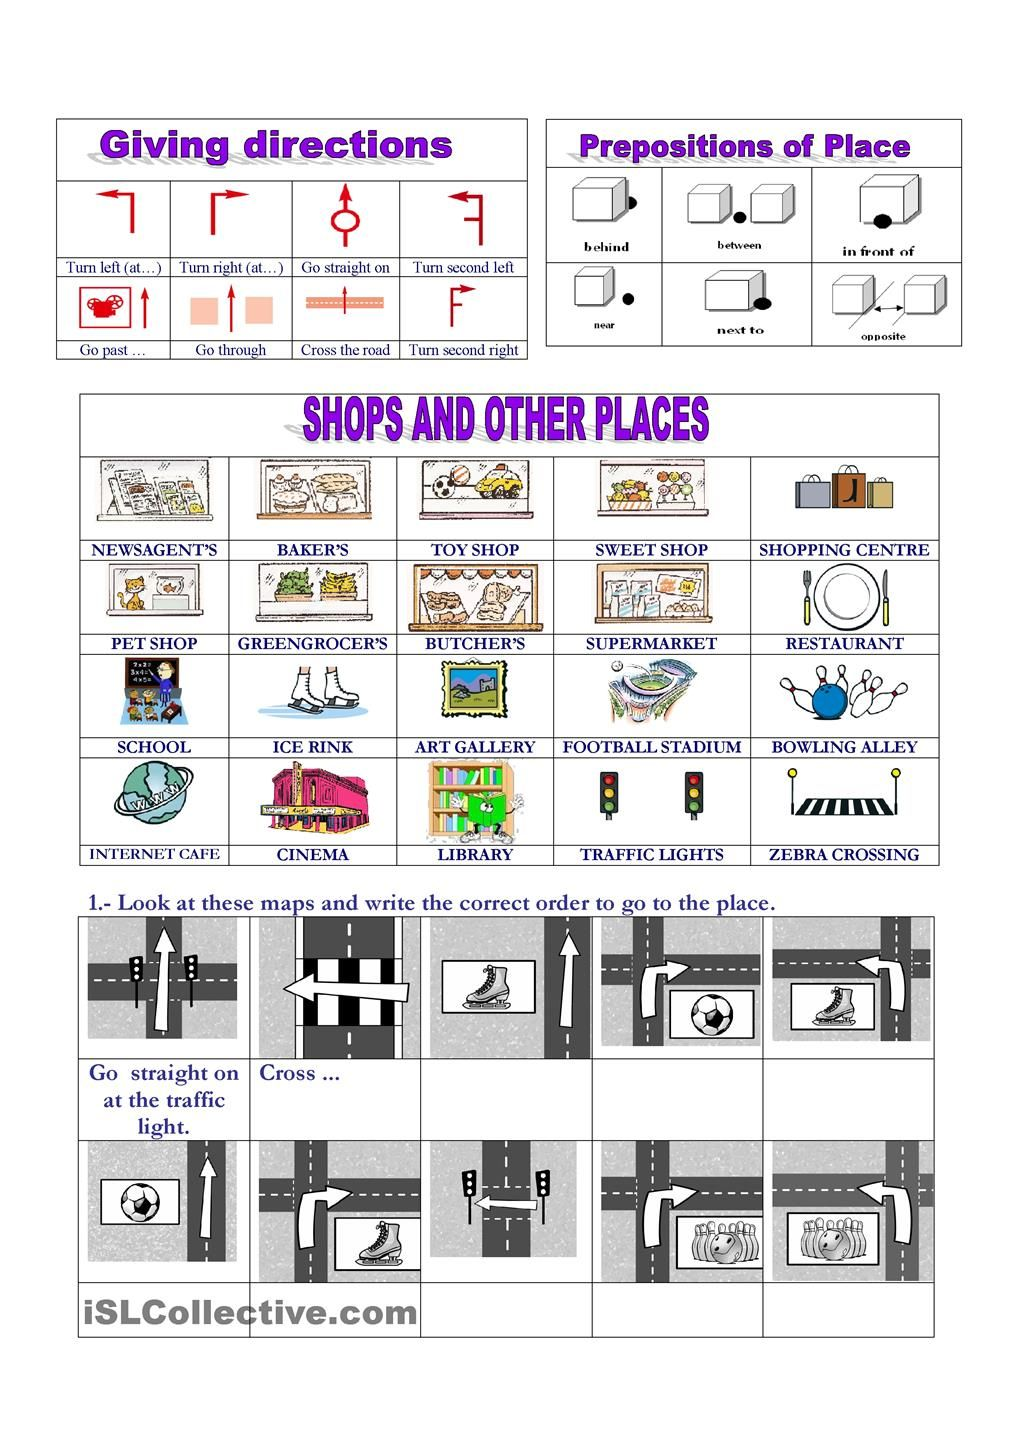 Uncategorized Directions Worksheet places giving directions httpwww babelcoach netfr netfr